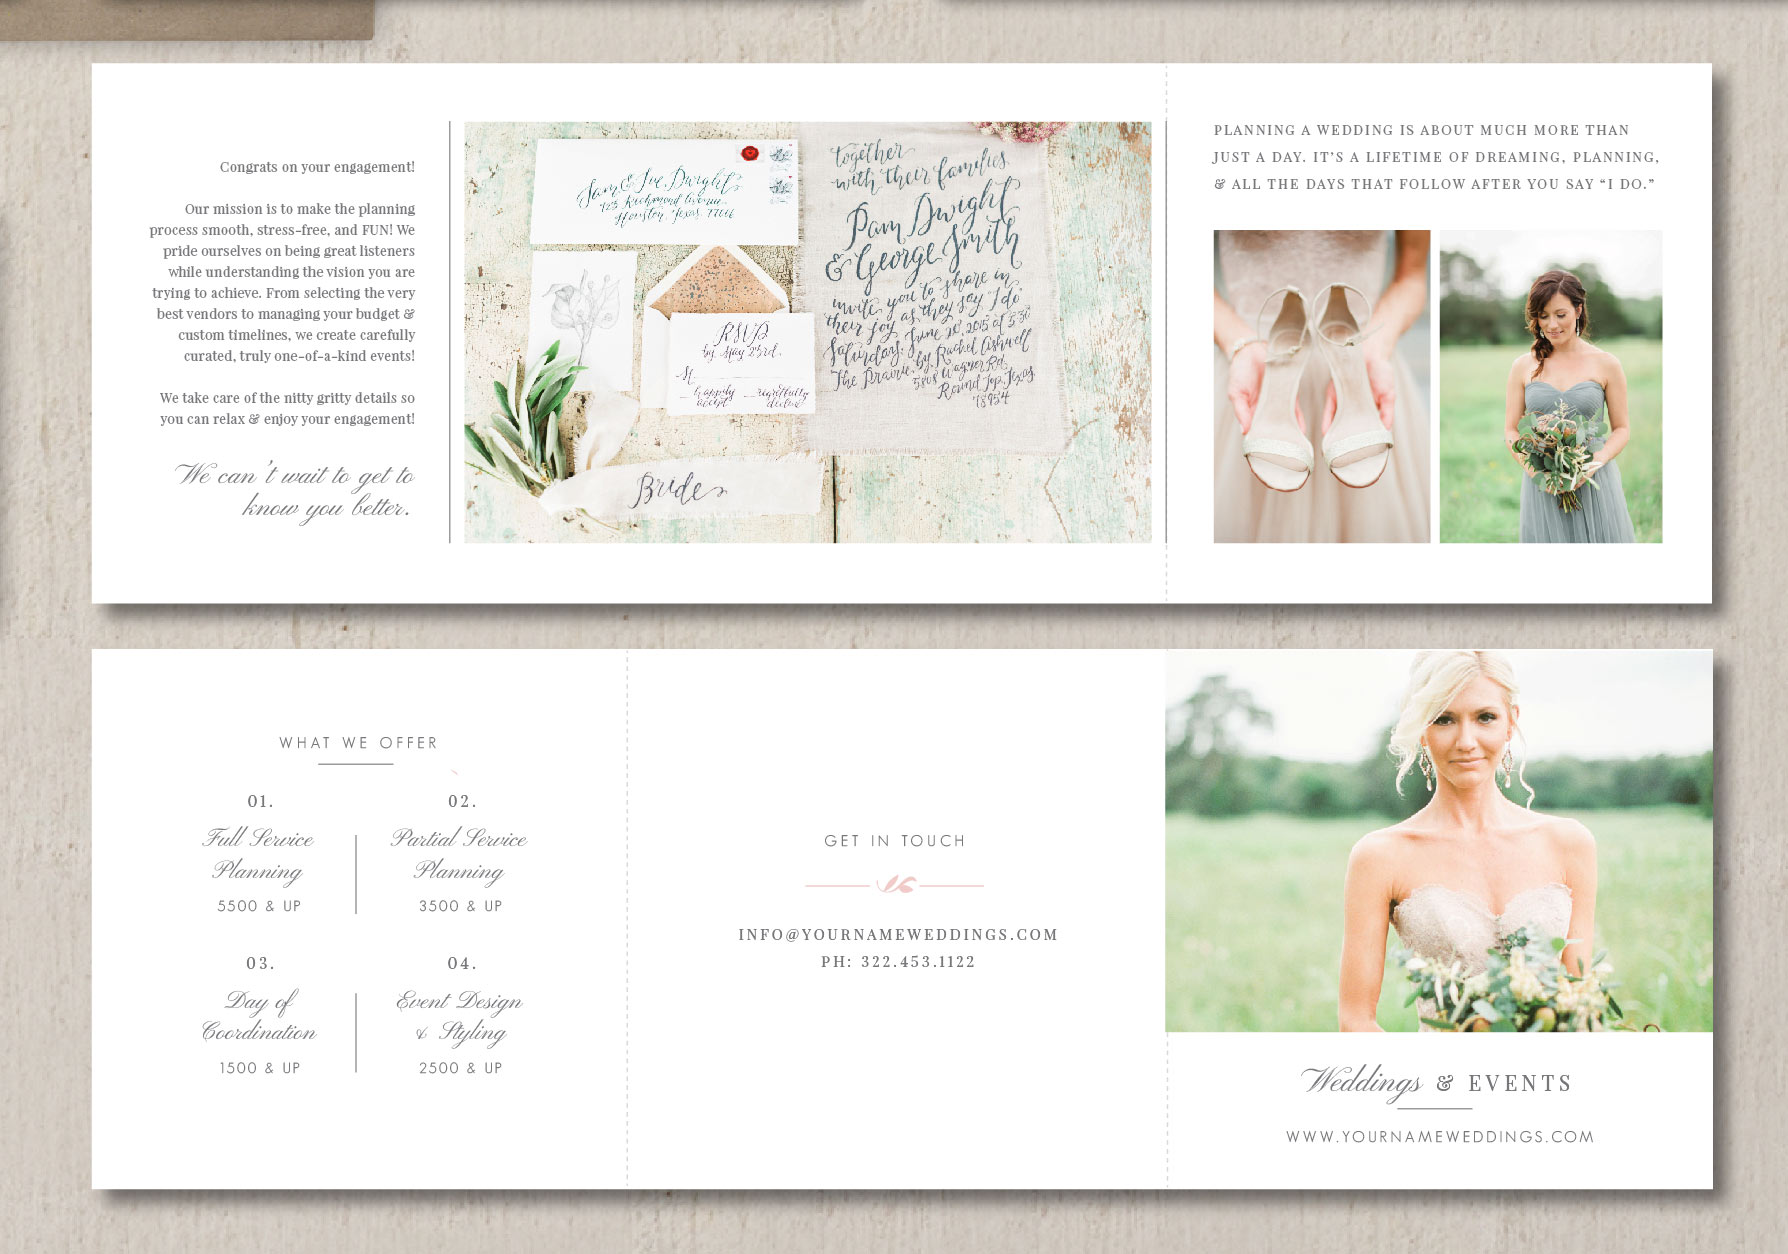 Pricing Guide Trifold Template for Wedding Planners - Eucalyptus